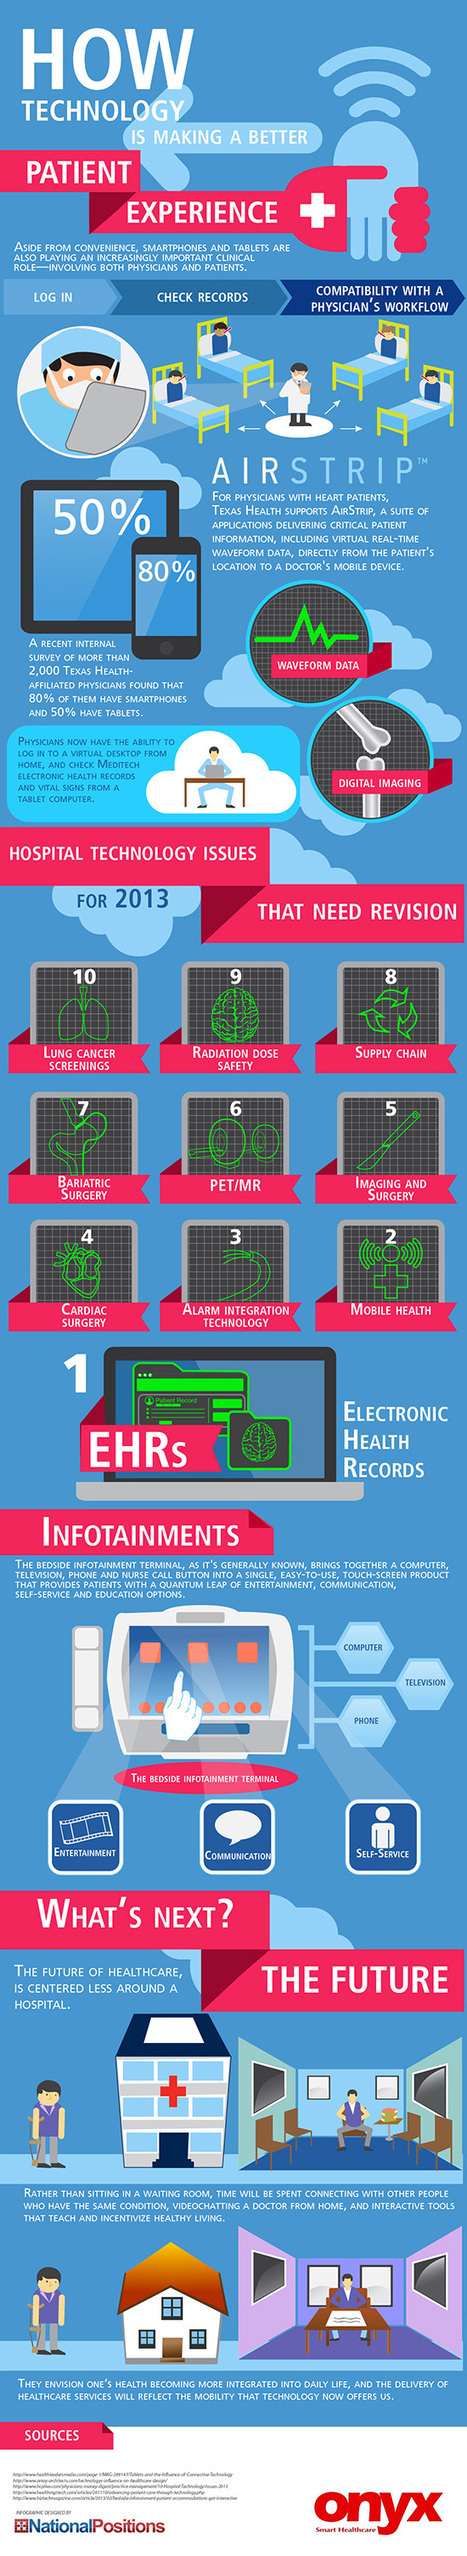 [Infographic] Better Patient Experience Through Technology | TLB | Healthcare infographics | Scoop.it